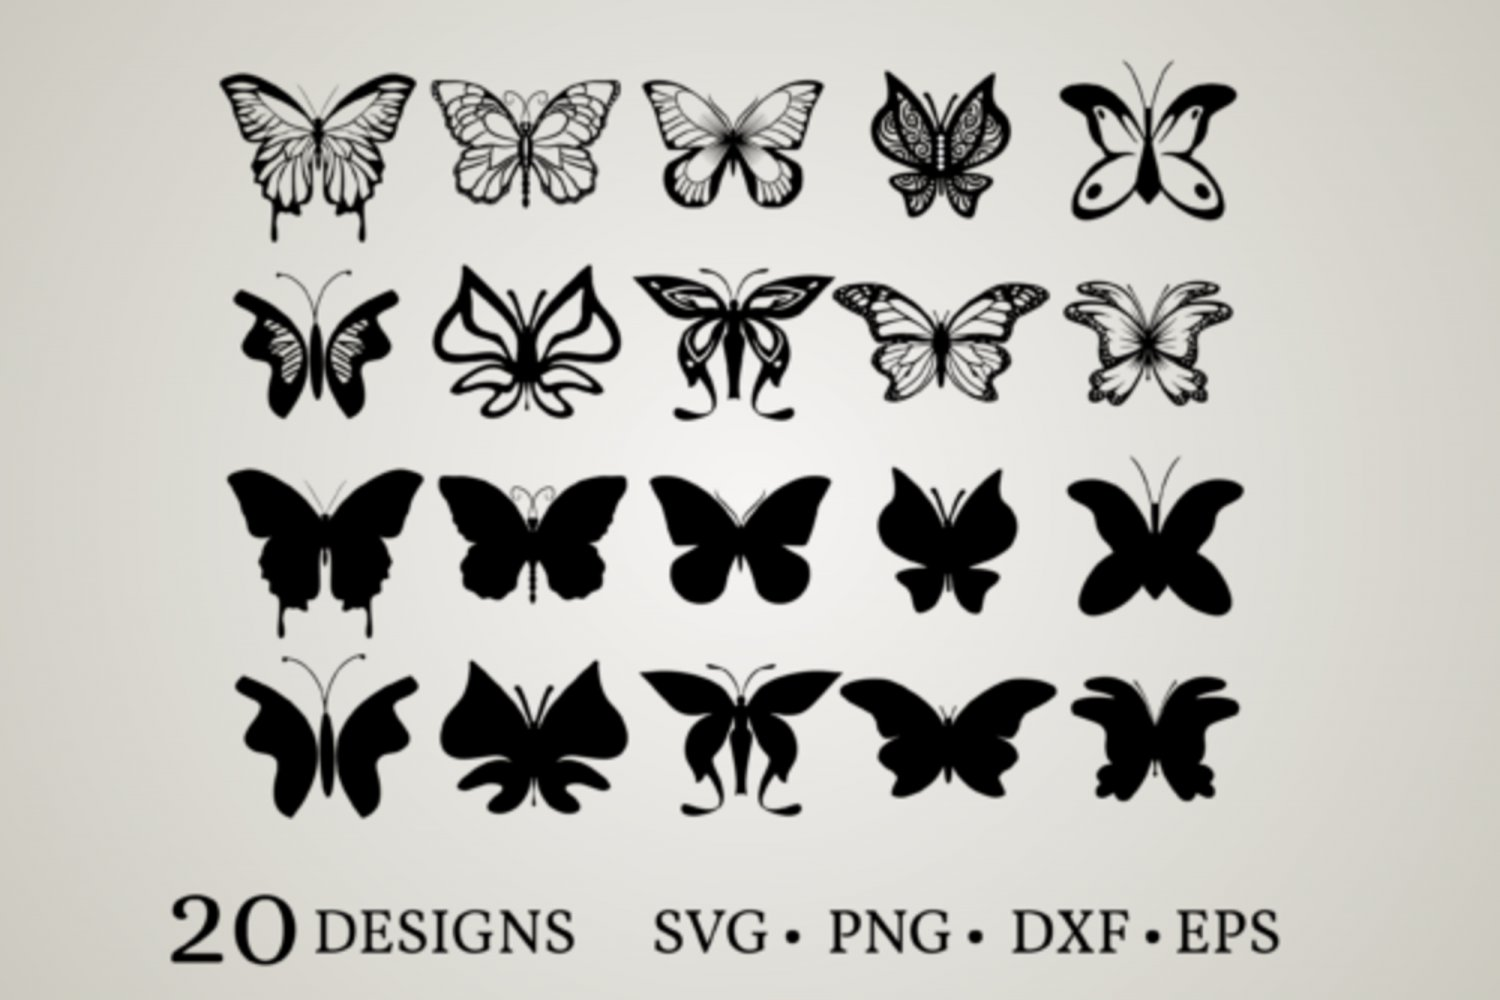 HUGE bundle Butterfly-Bundle-Butterfly Graphic Desing T-shirt in SVG EPS PNG and DXF files